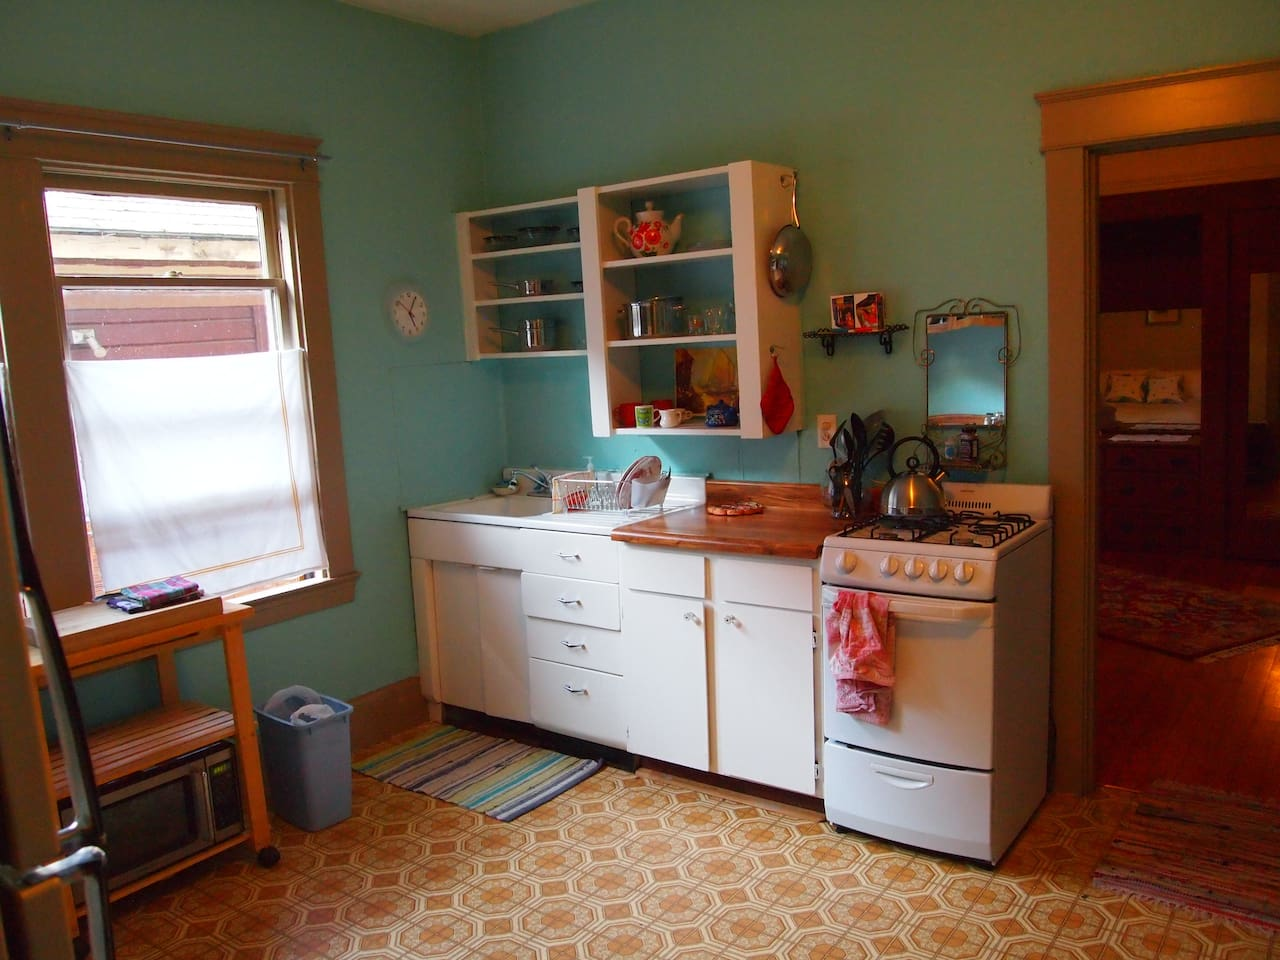 Sweet vintage kitchen with little gas stove, utensils, cookware, you should be able to really make use of this kitchen if you're so inclined.